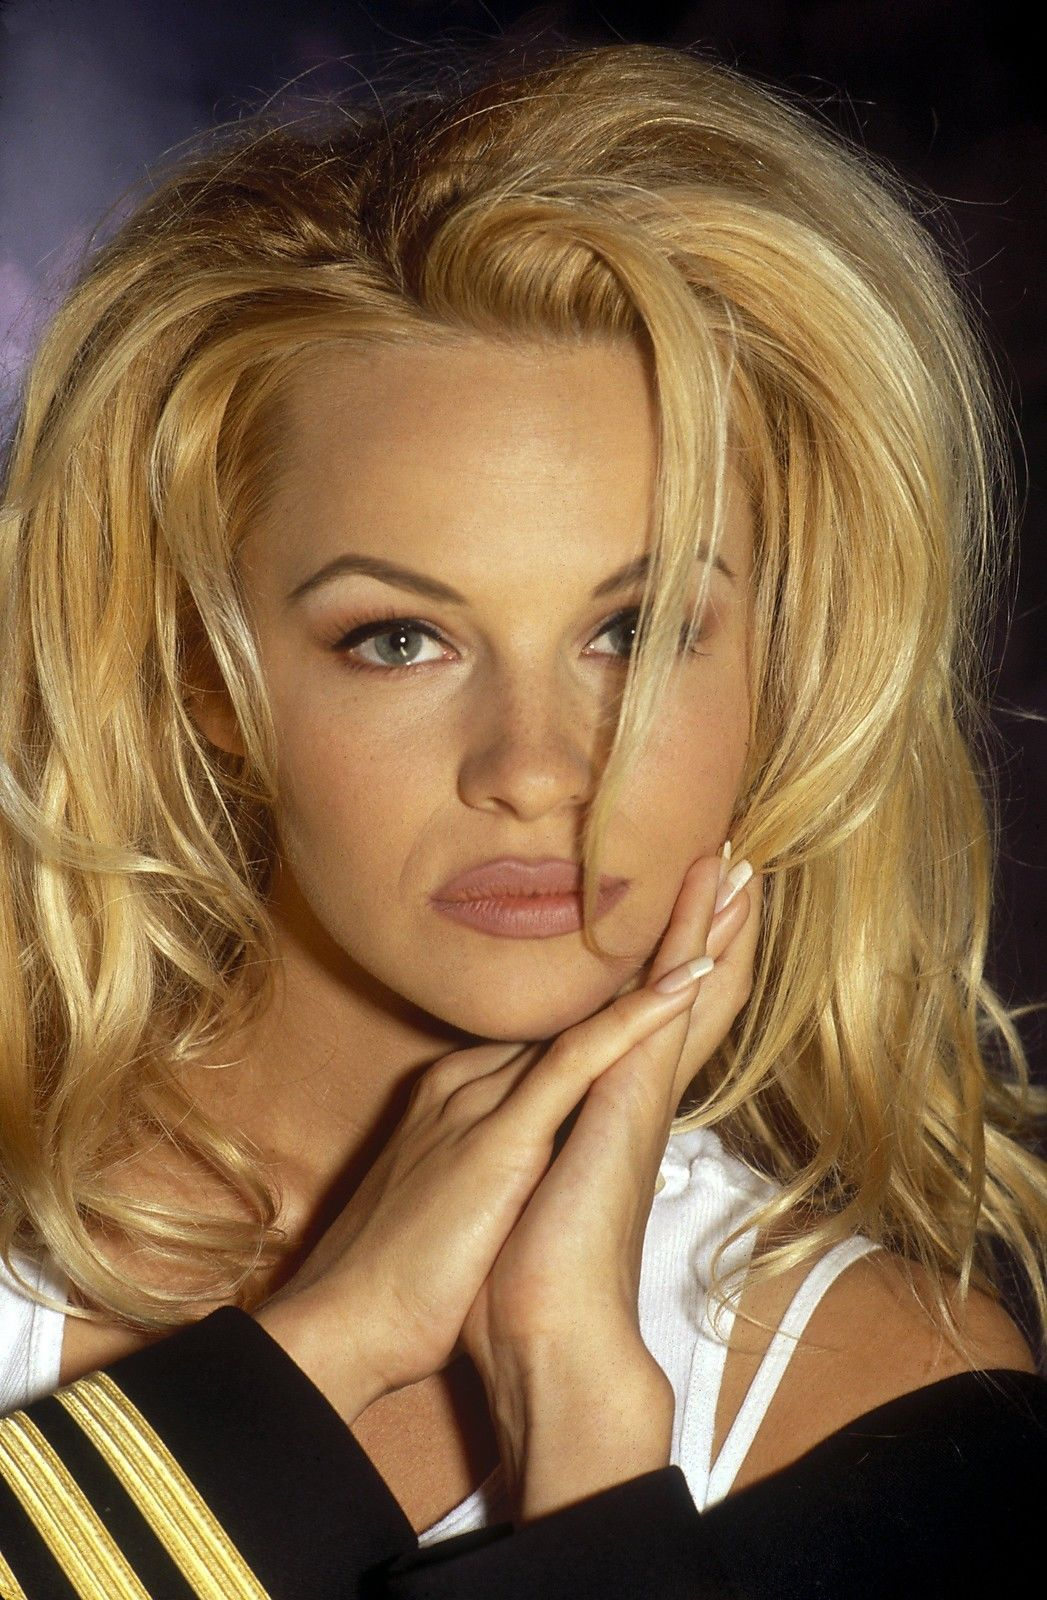 Pamela Anderson born July 1, 1967 (age 51) Pamela Anderson born July 1, 1967 (age 51) new picture